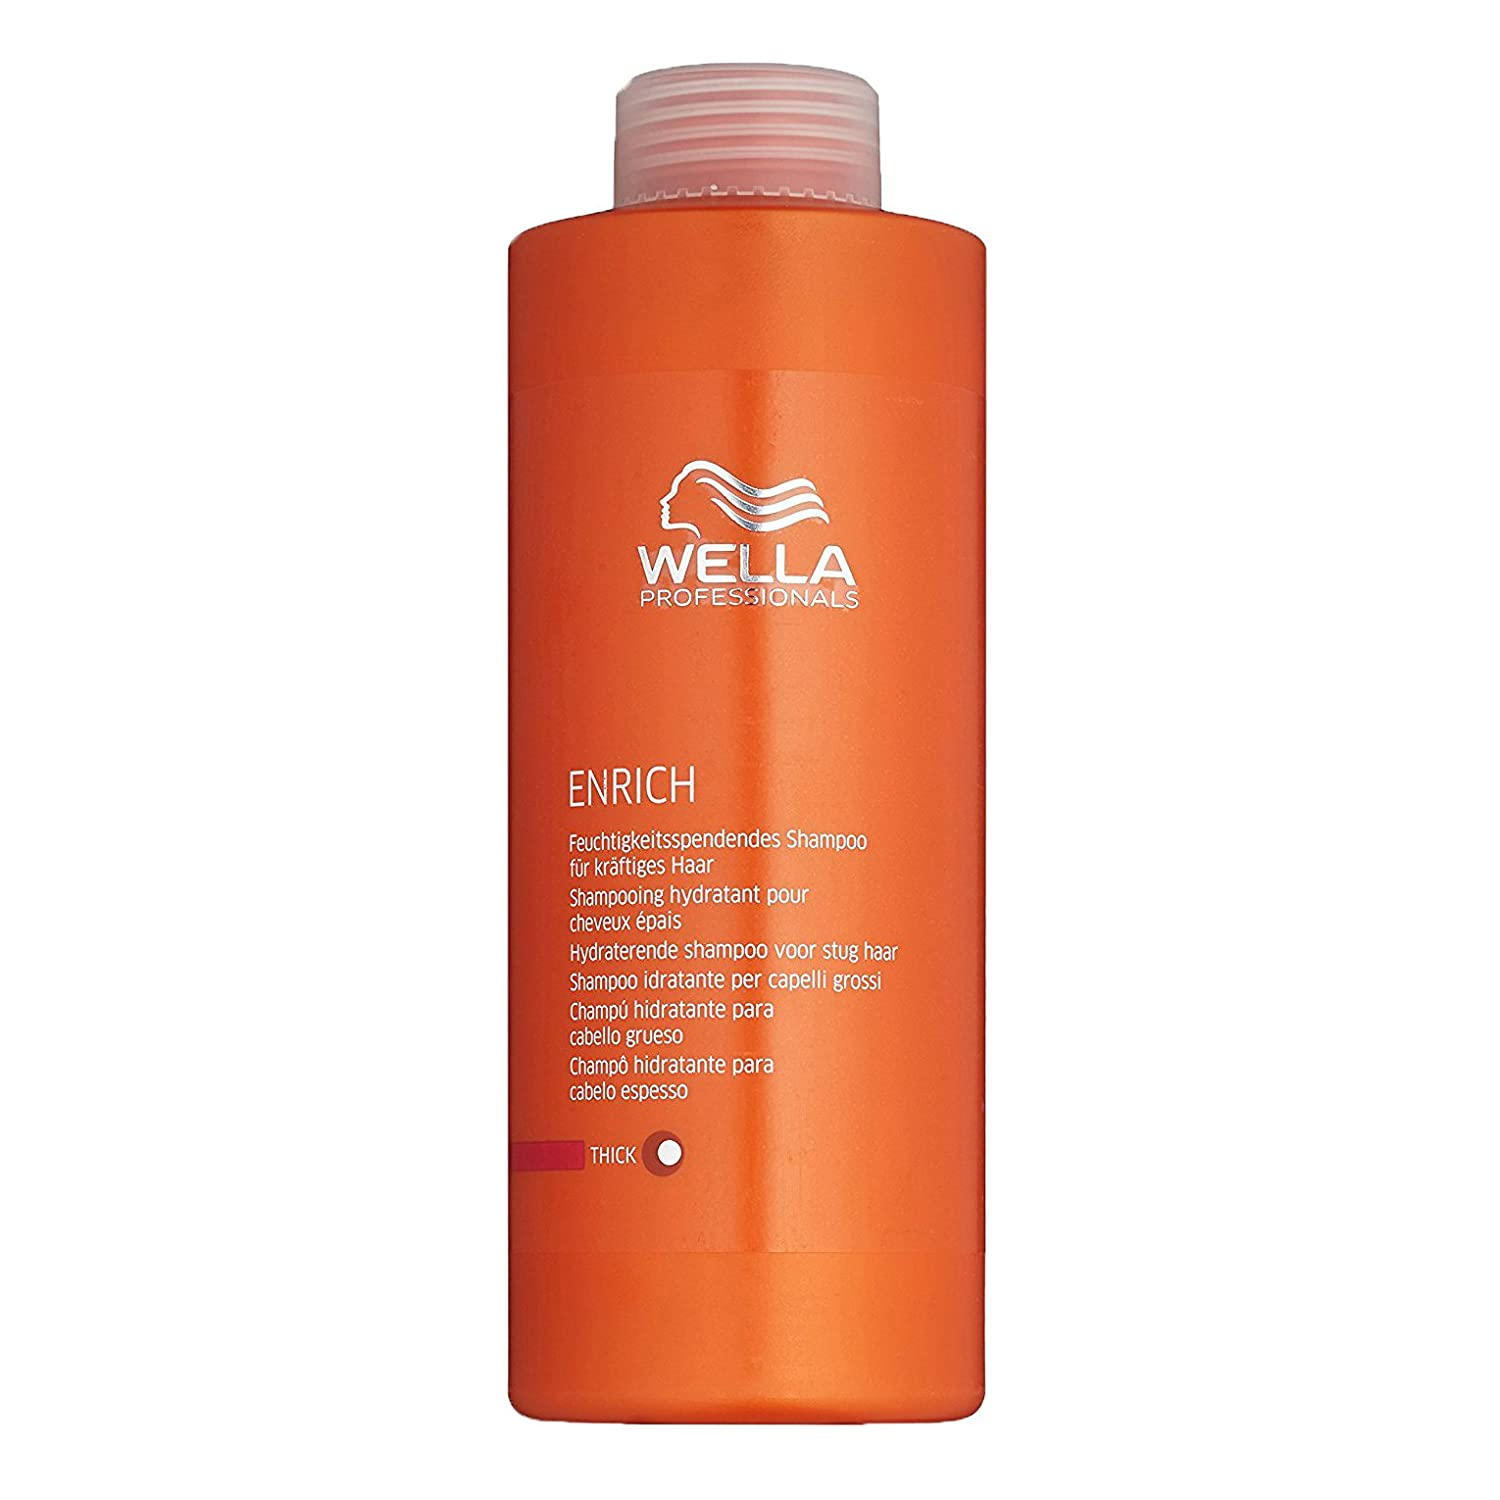 Wella Shampoo Idratante Capelli Grossi 1000 Mill 4015600117986